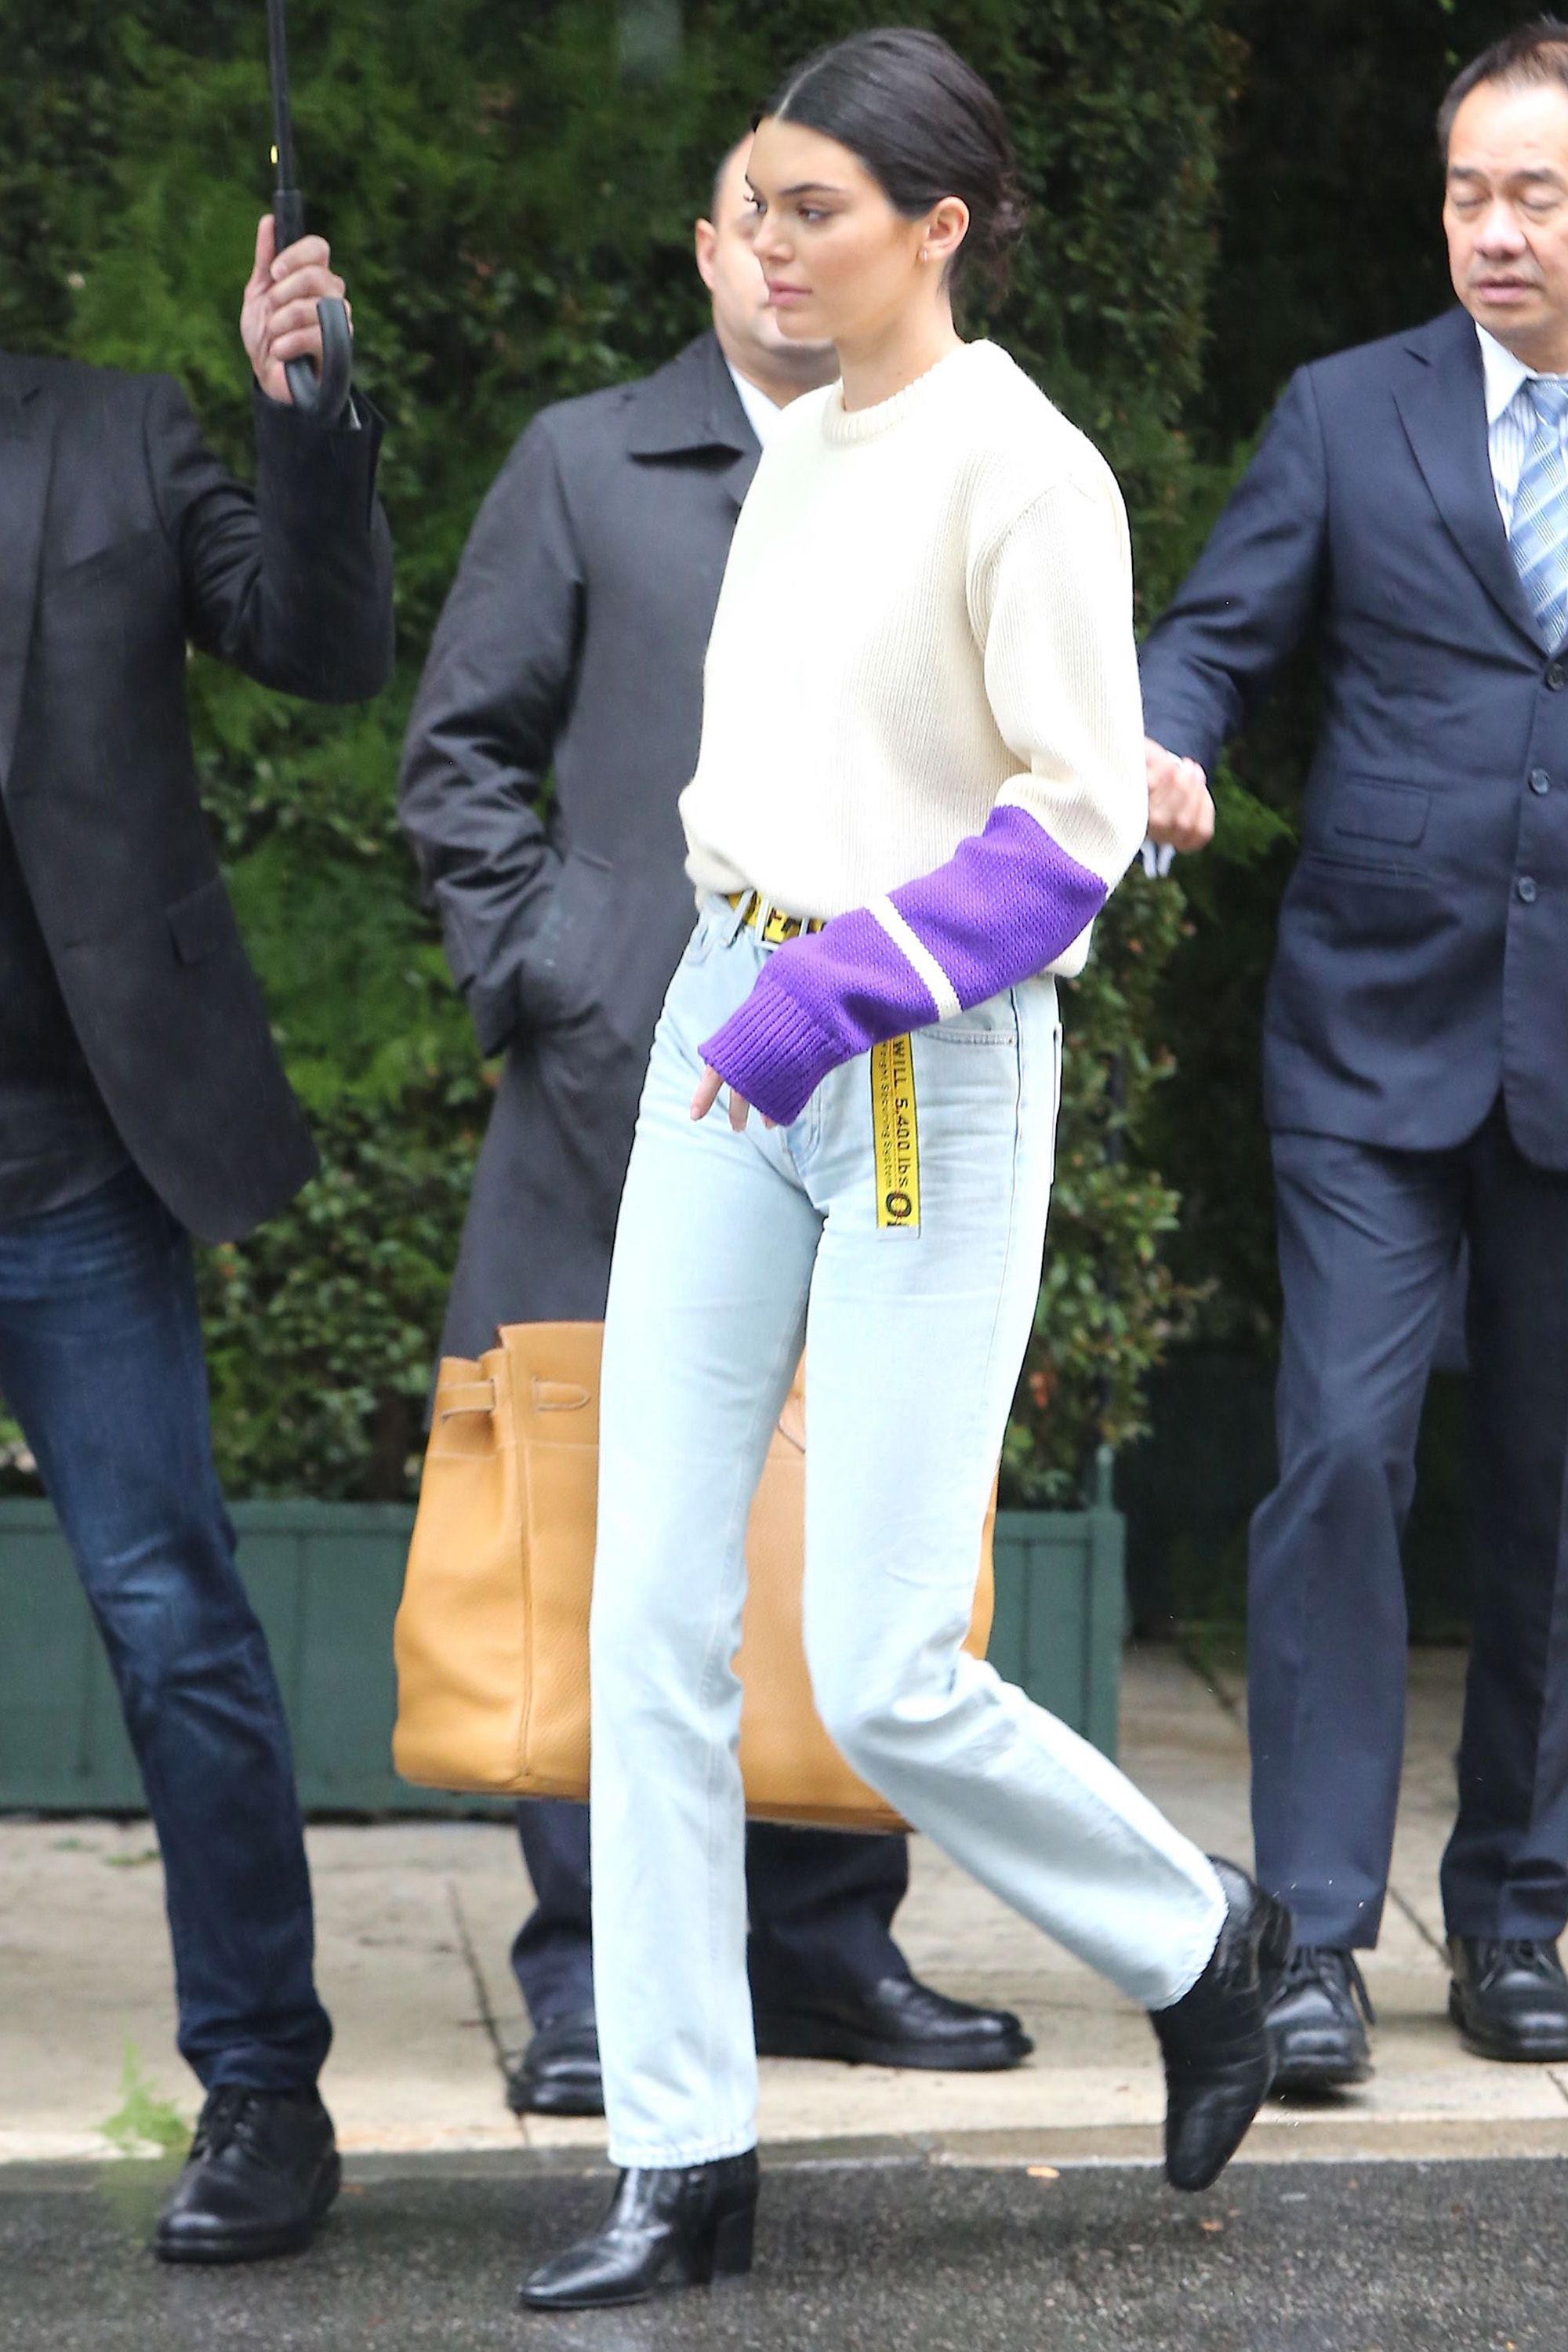 cb8329d62948 Kendall Jenner Style - Kendall Jenner s Best Outfits